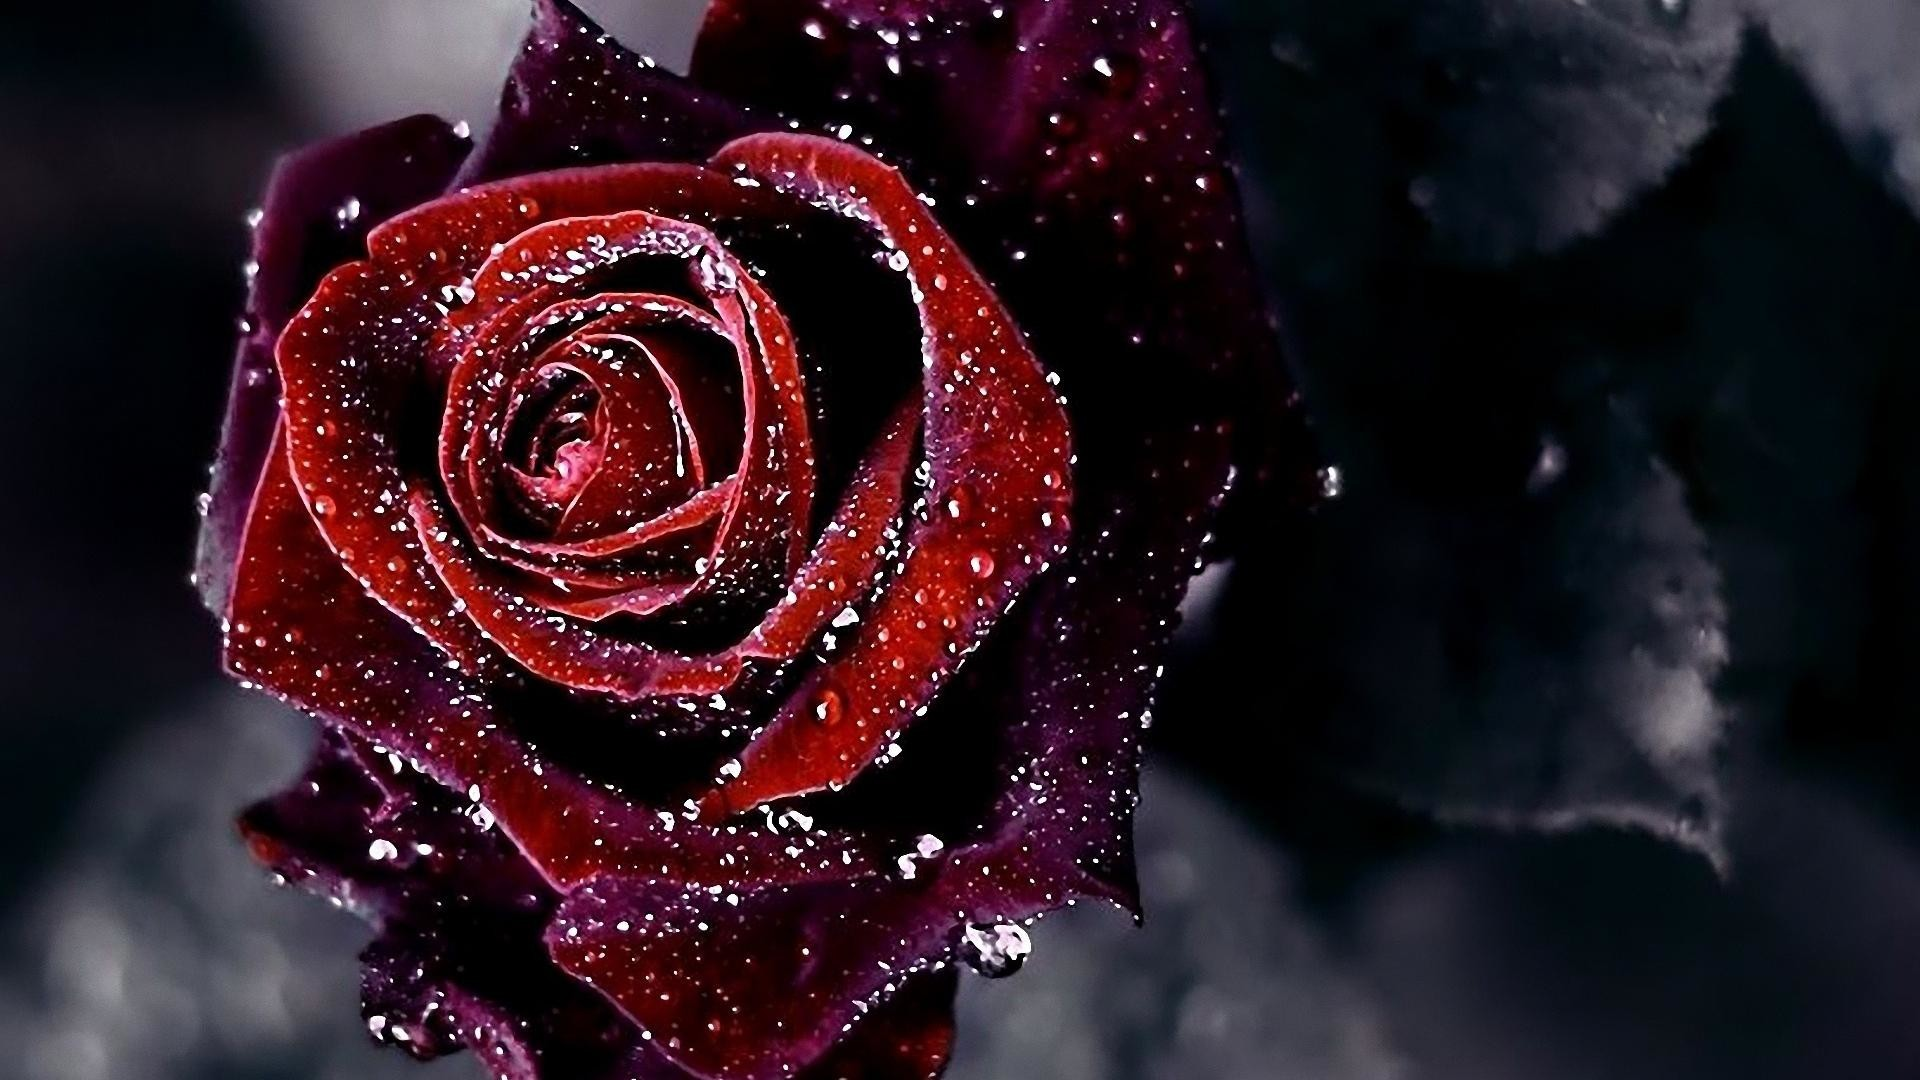 red rose wallpaper images